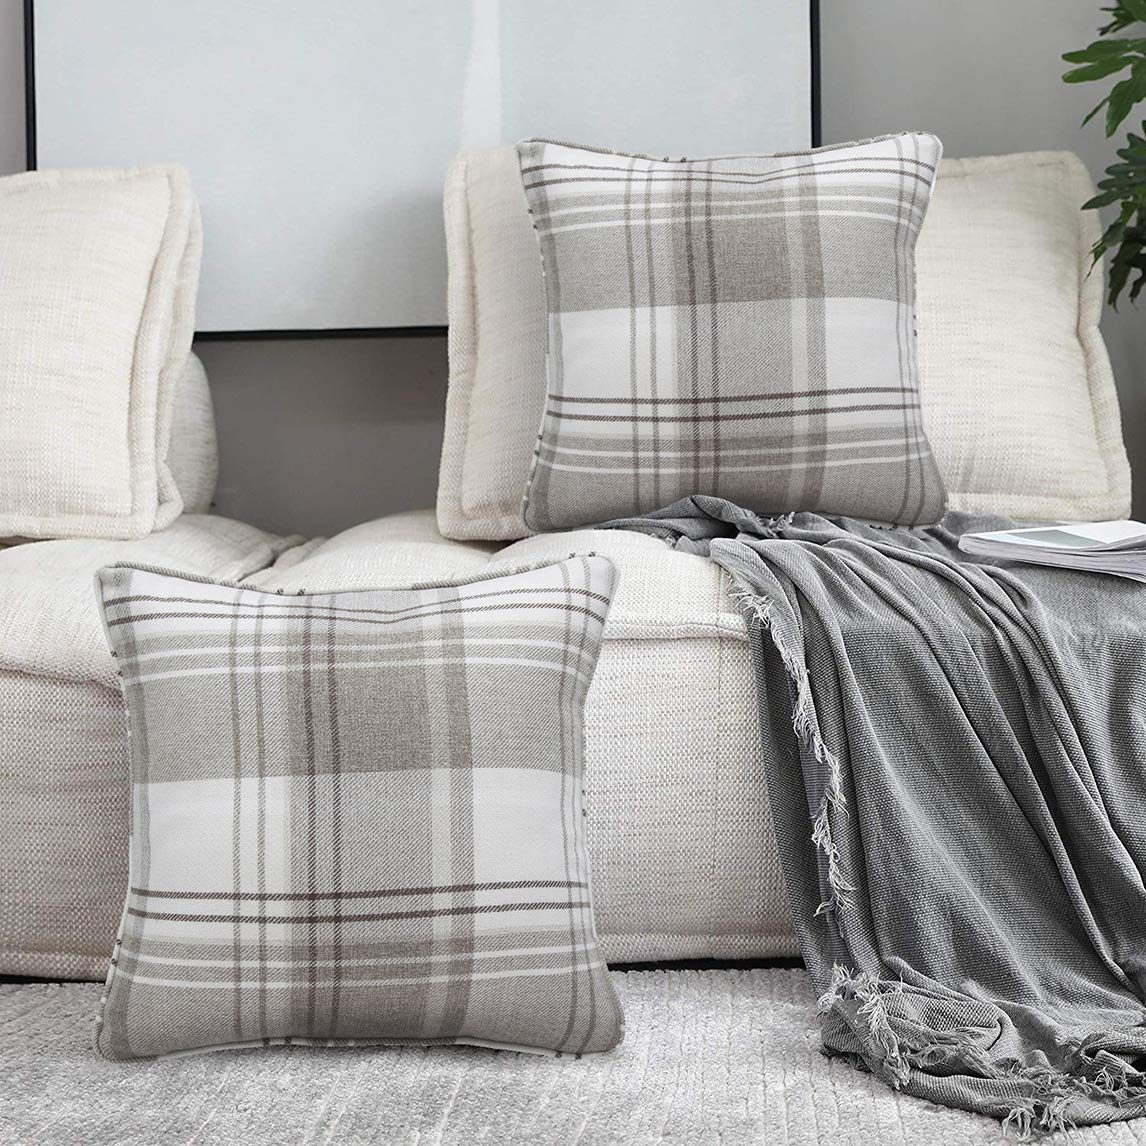 Amazing Alexandra Cole Check Tartan Outdoor Throw Pillow Case Cushion Cover For Farmhouse Sofa Set Of 4 18 X 18 Brown Pabps2019 Chair Design Images Pabps2019Com